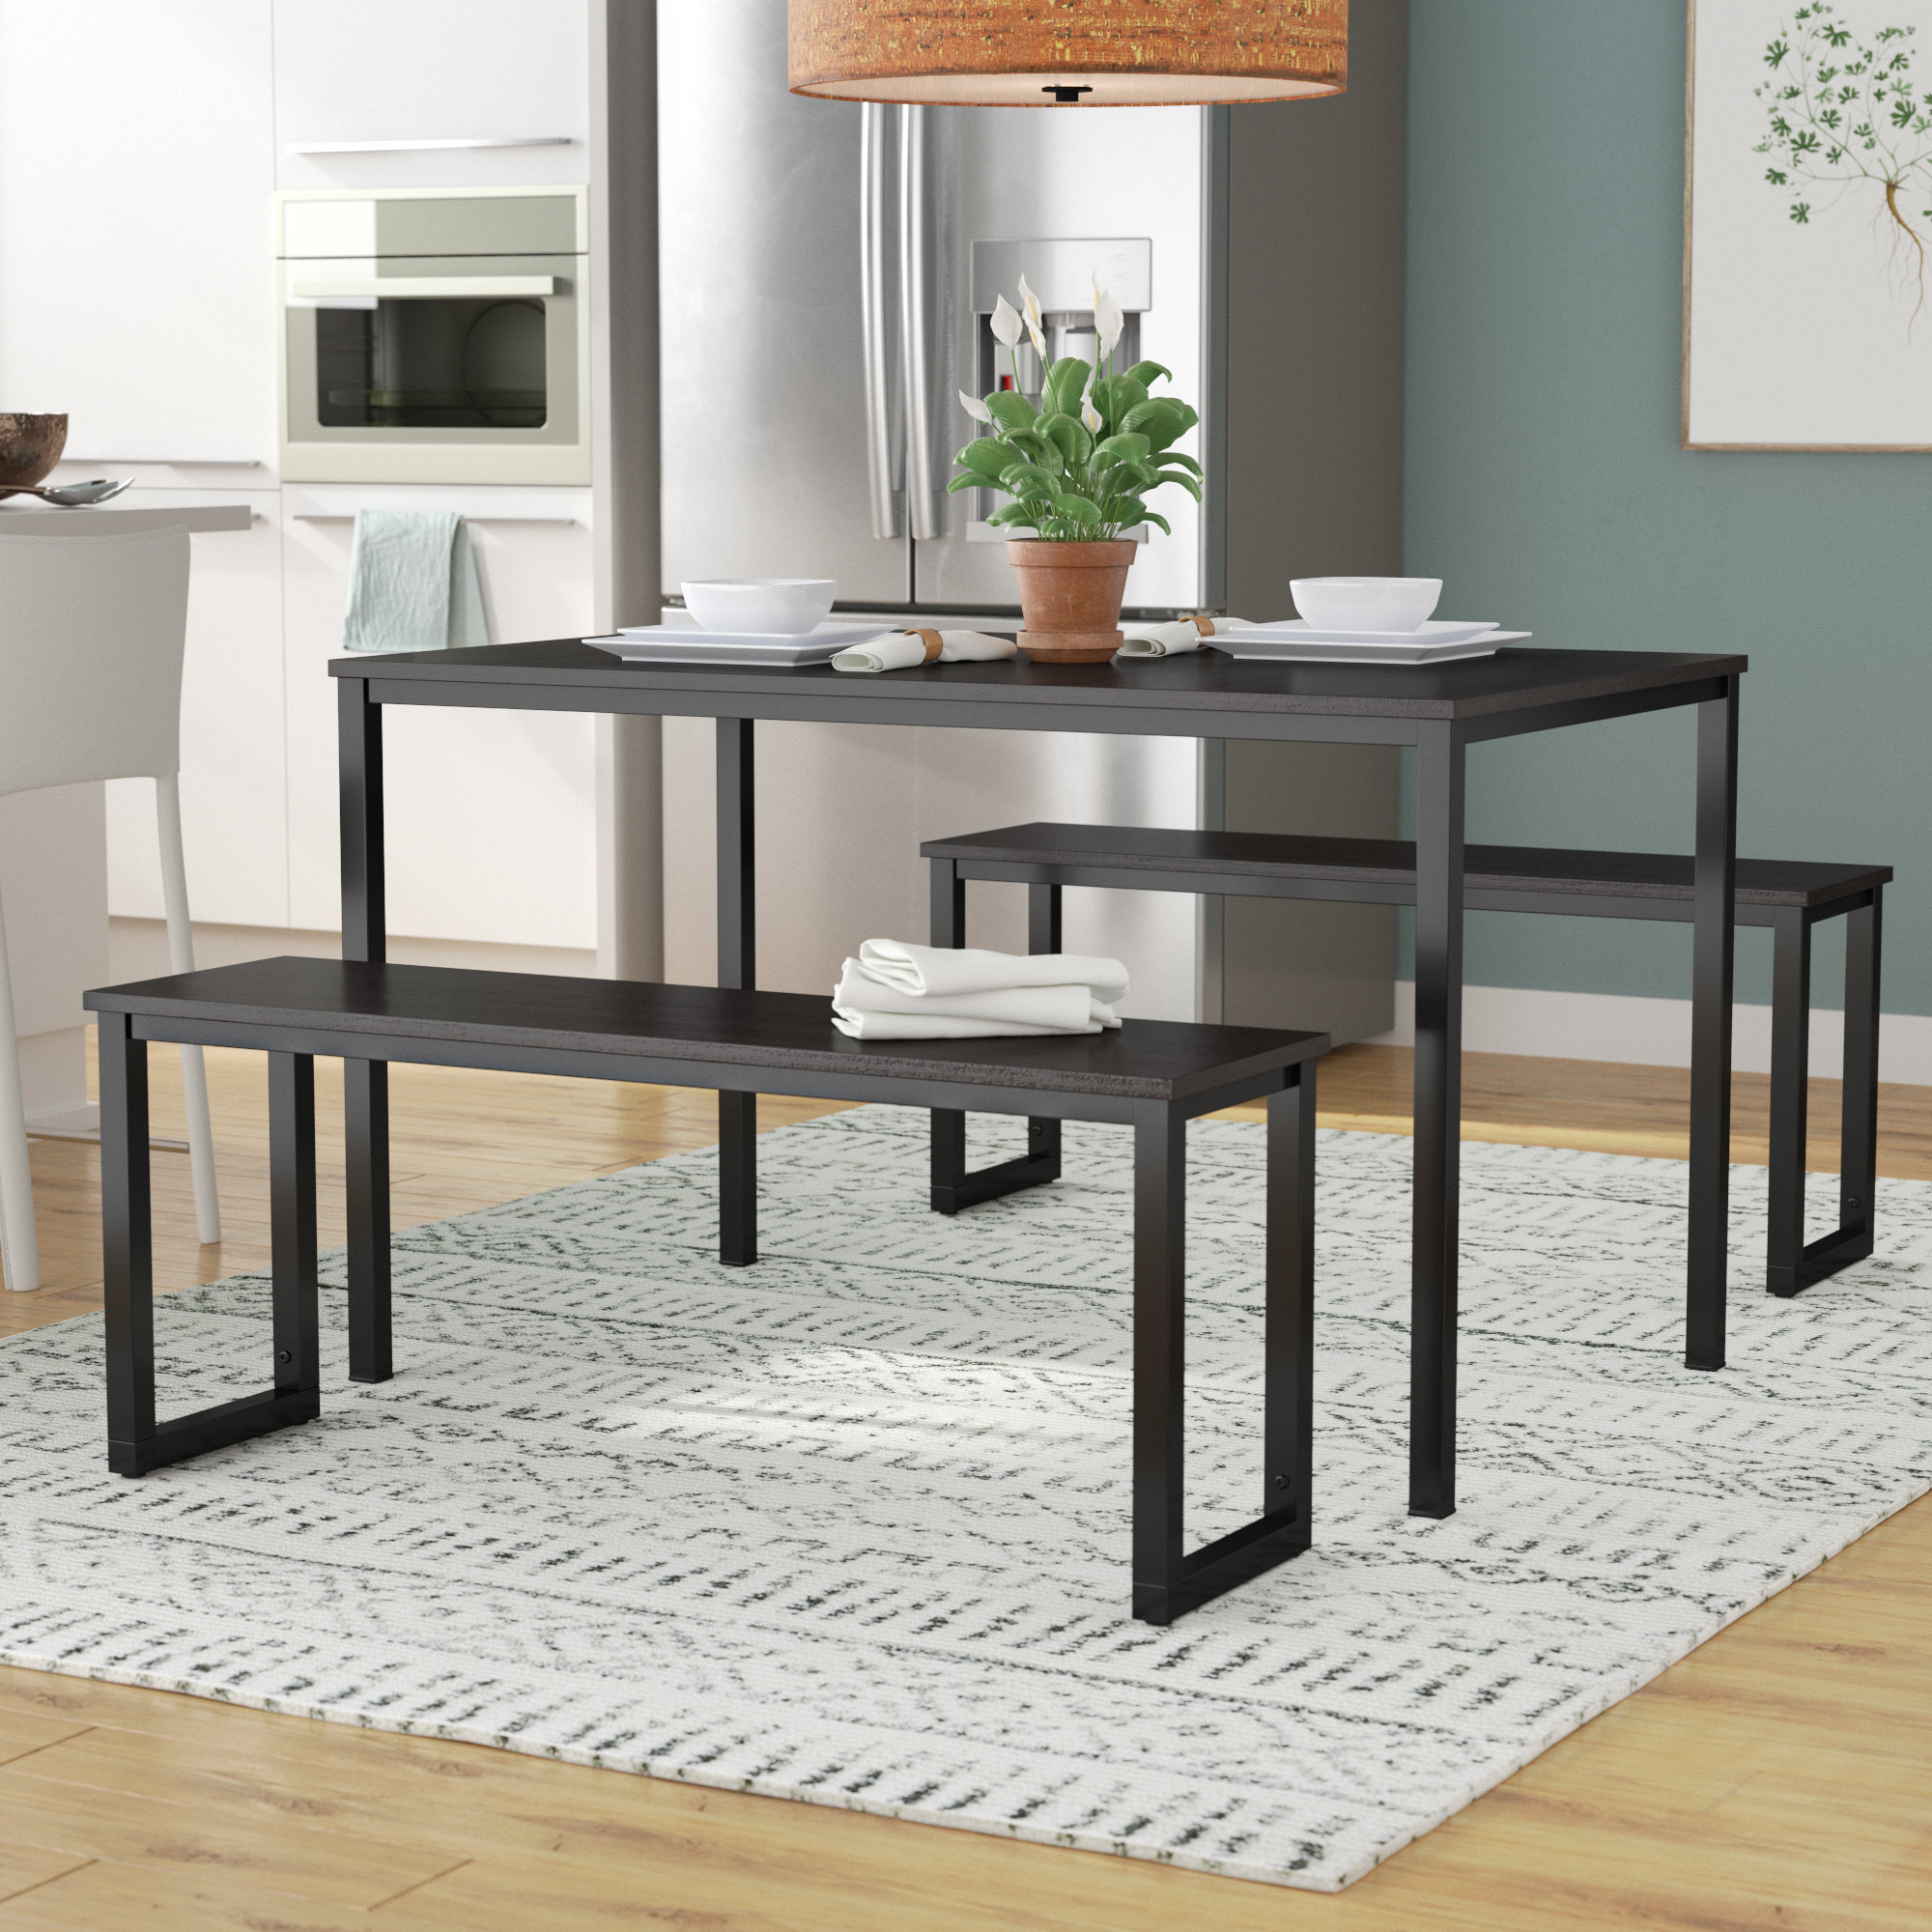 Wayfair With Regard To Preferred Frida 3 Piece Dining Table Sets (View 3 of 25)